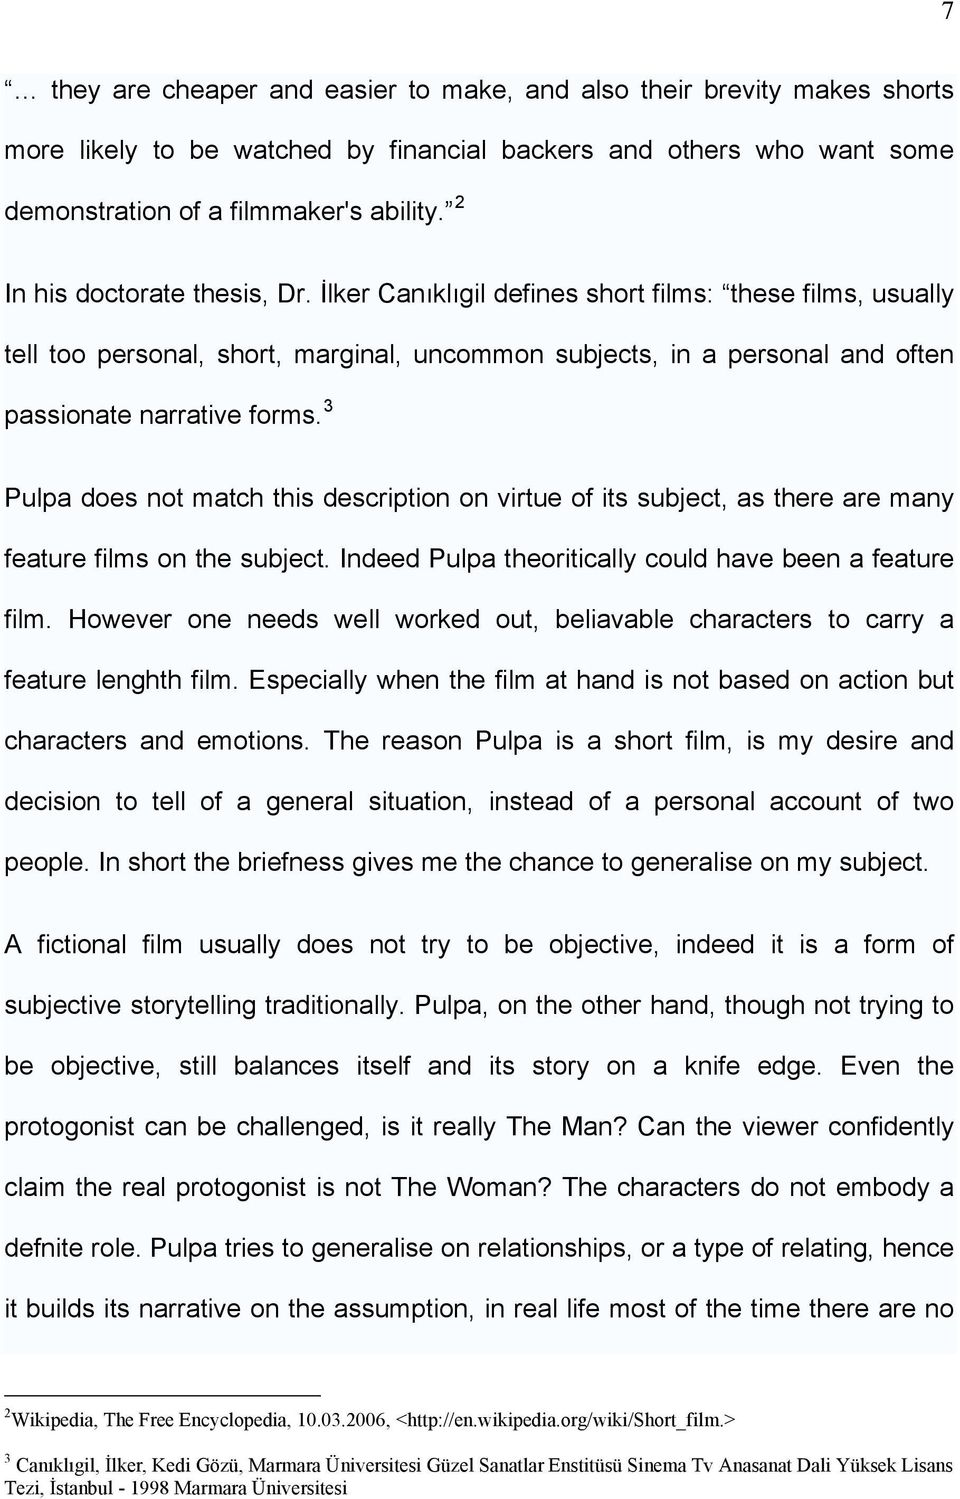 3 Pulpa does not match this description on virtue of its subject, as there are many feature films on the subject. Indeed Pulpa theoritically could have been a feature film.